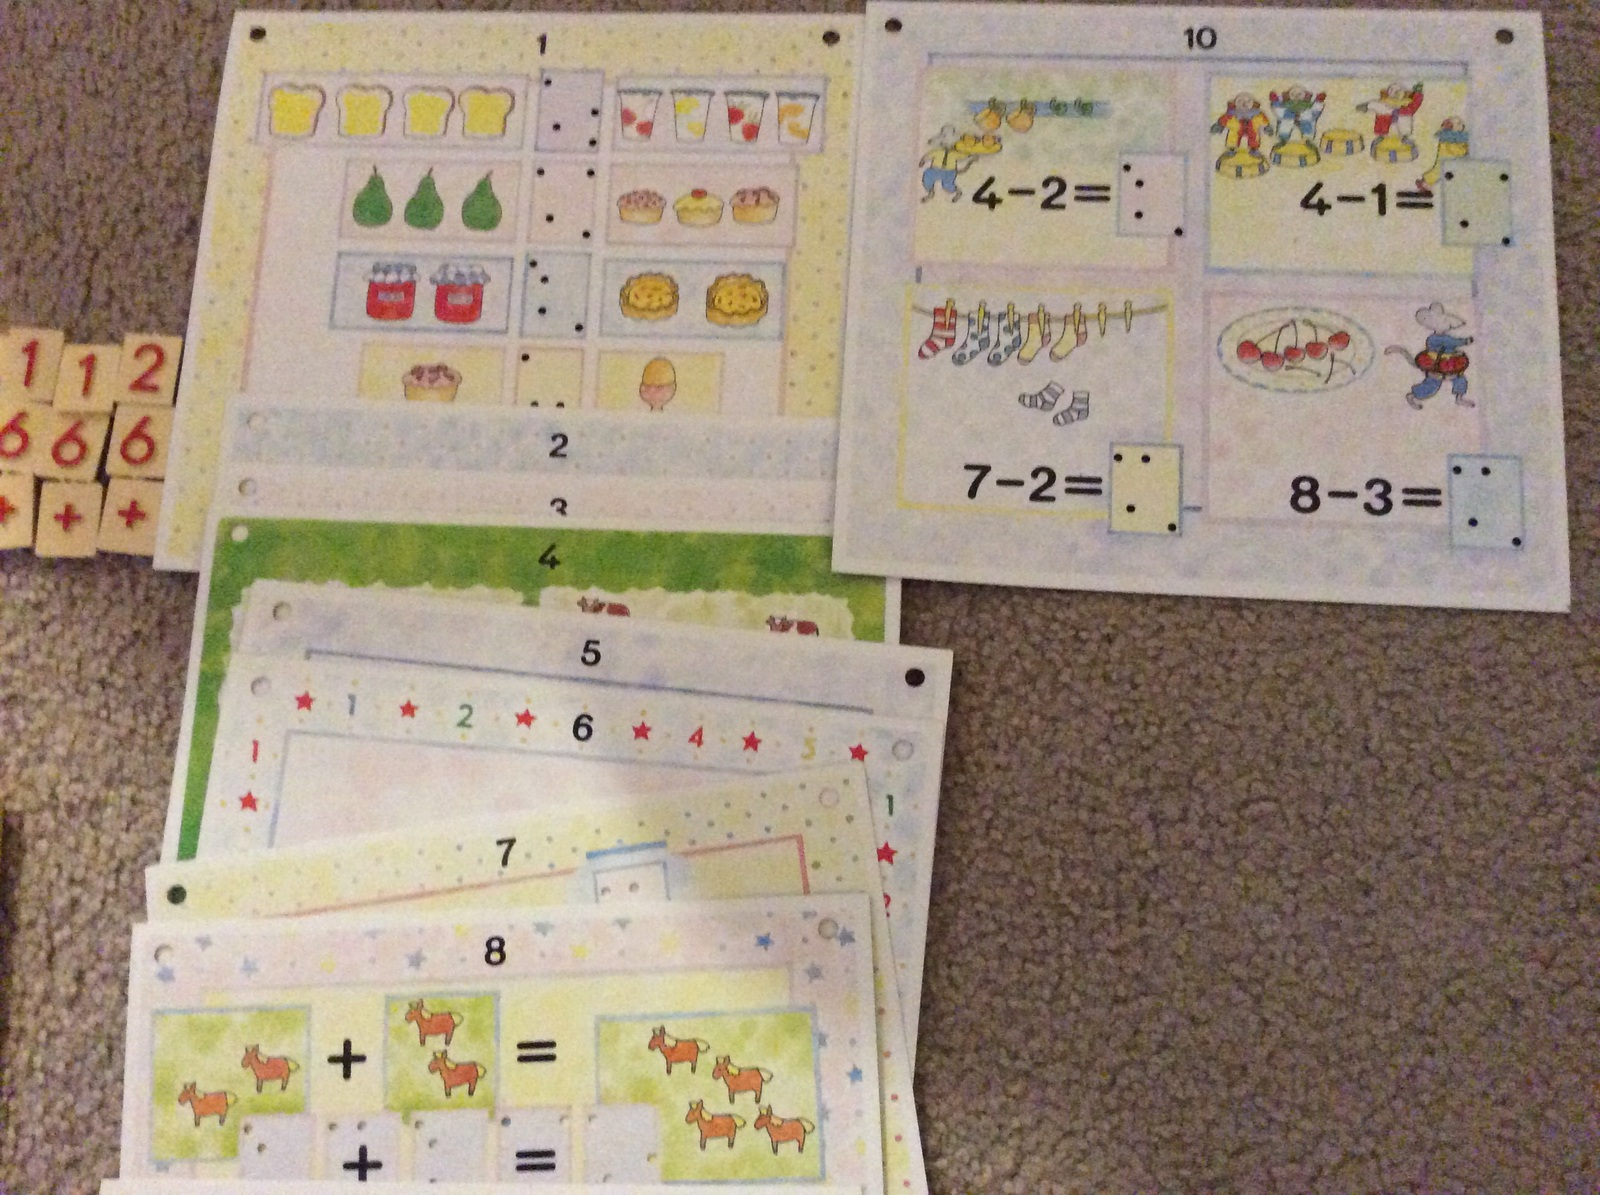 Fun With Sums Special Self-Corrective Number Tile Game Adding Subtracting Cards